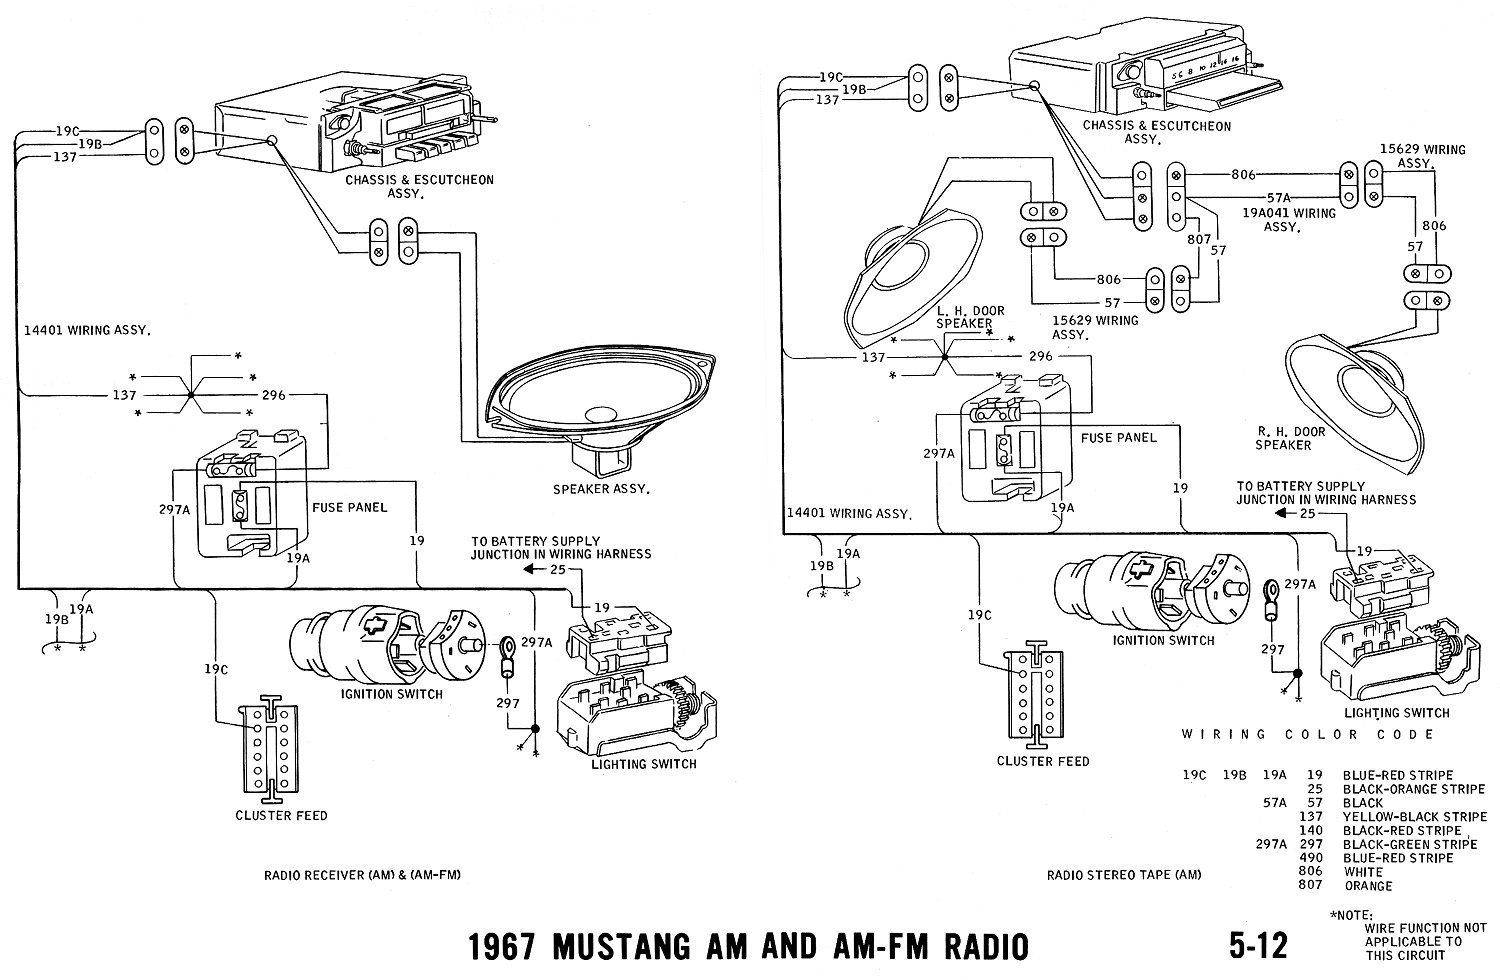 1967 Mustang Wiring And Vacuum Diagrams Average Joe Restoration Chevy Impala Gas Gauge Diagram Pictorial Schematic Am